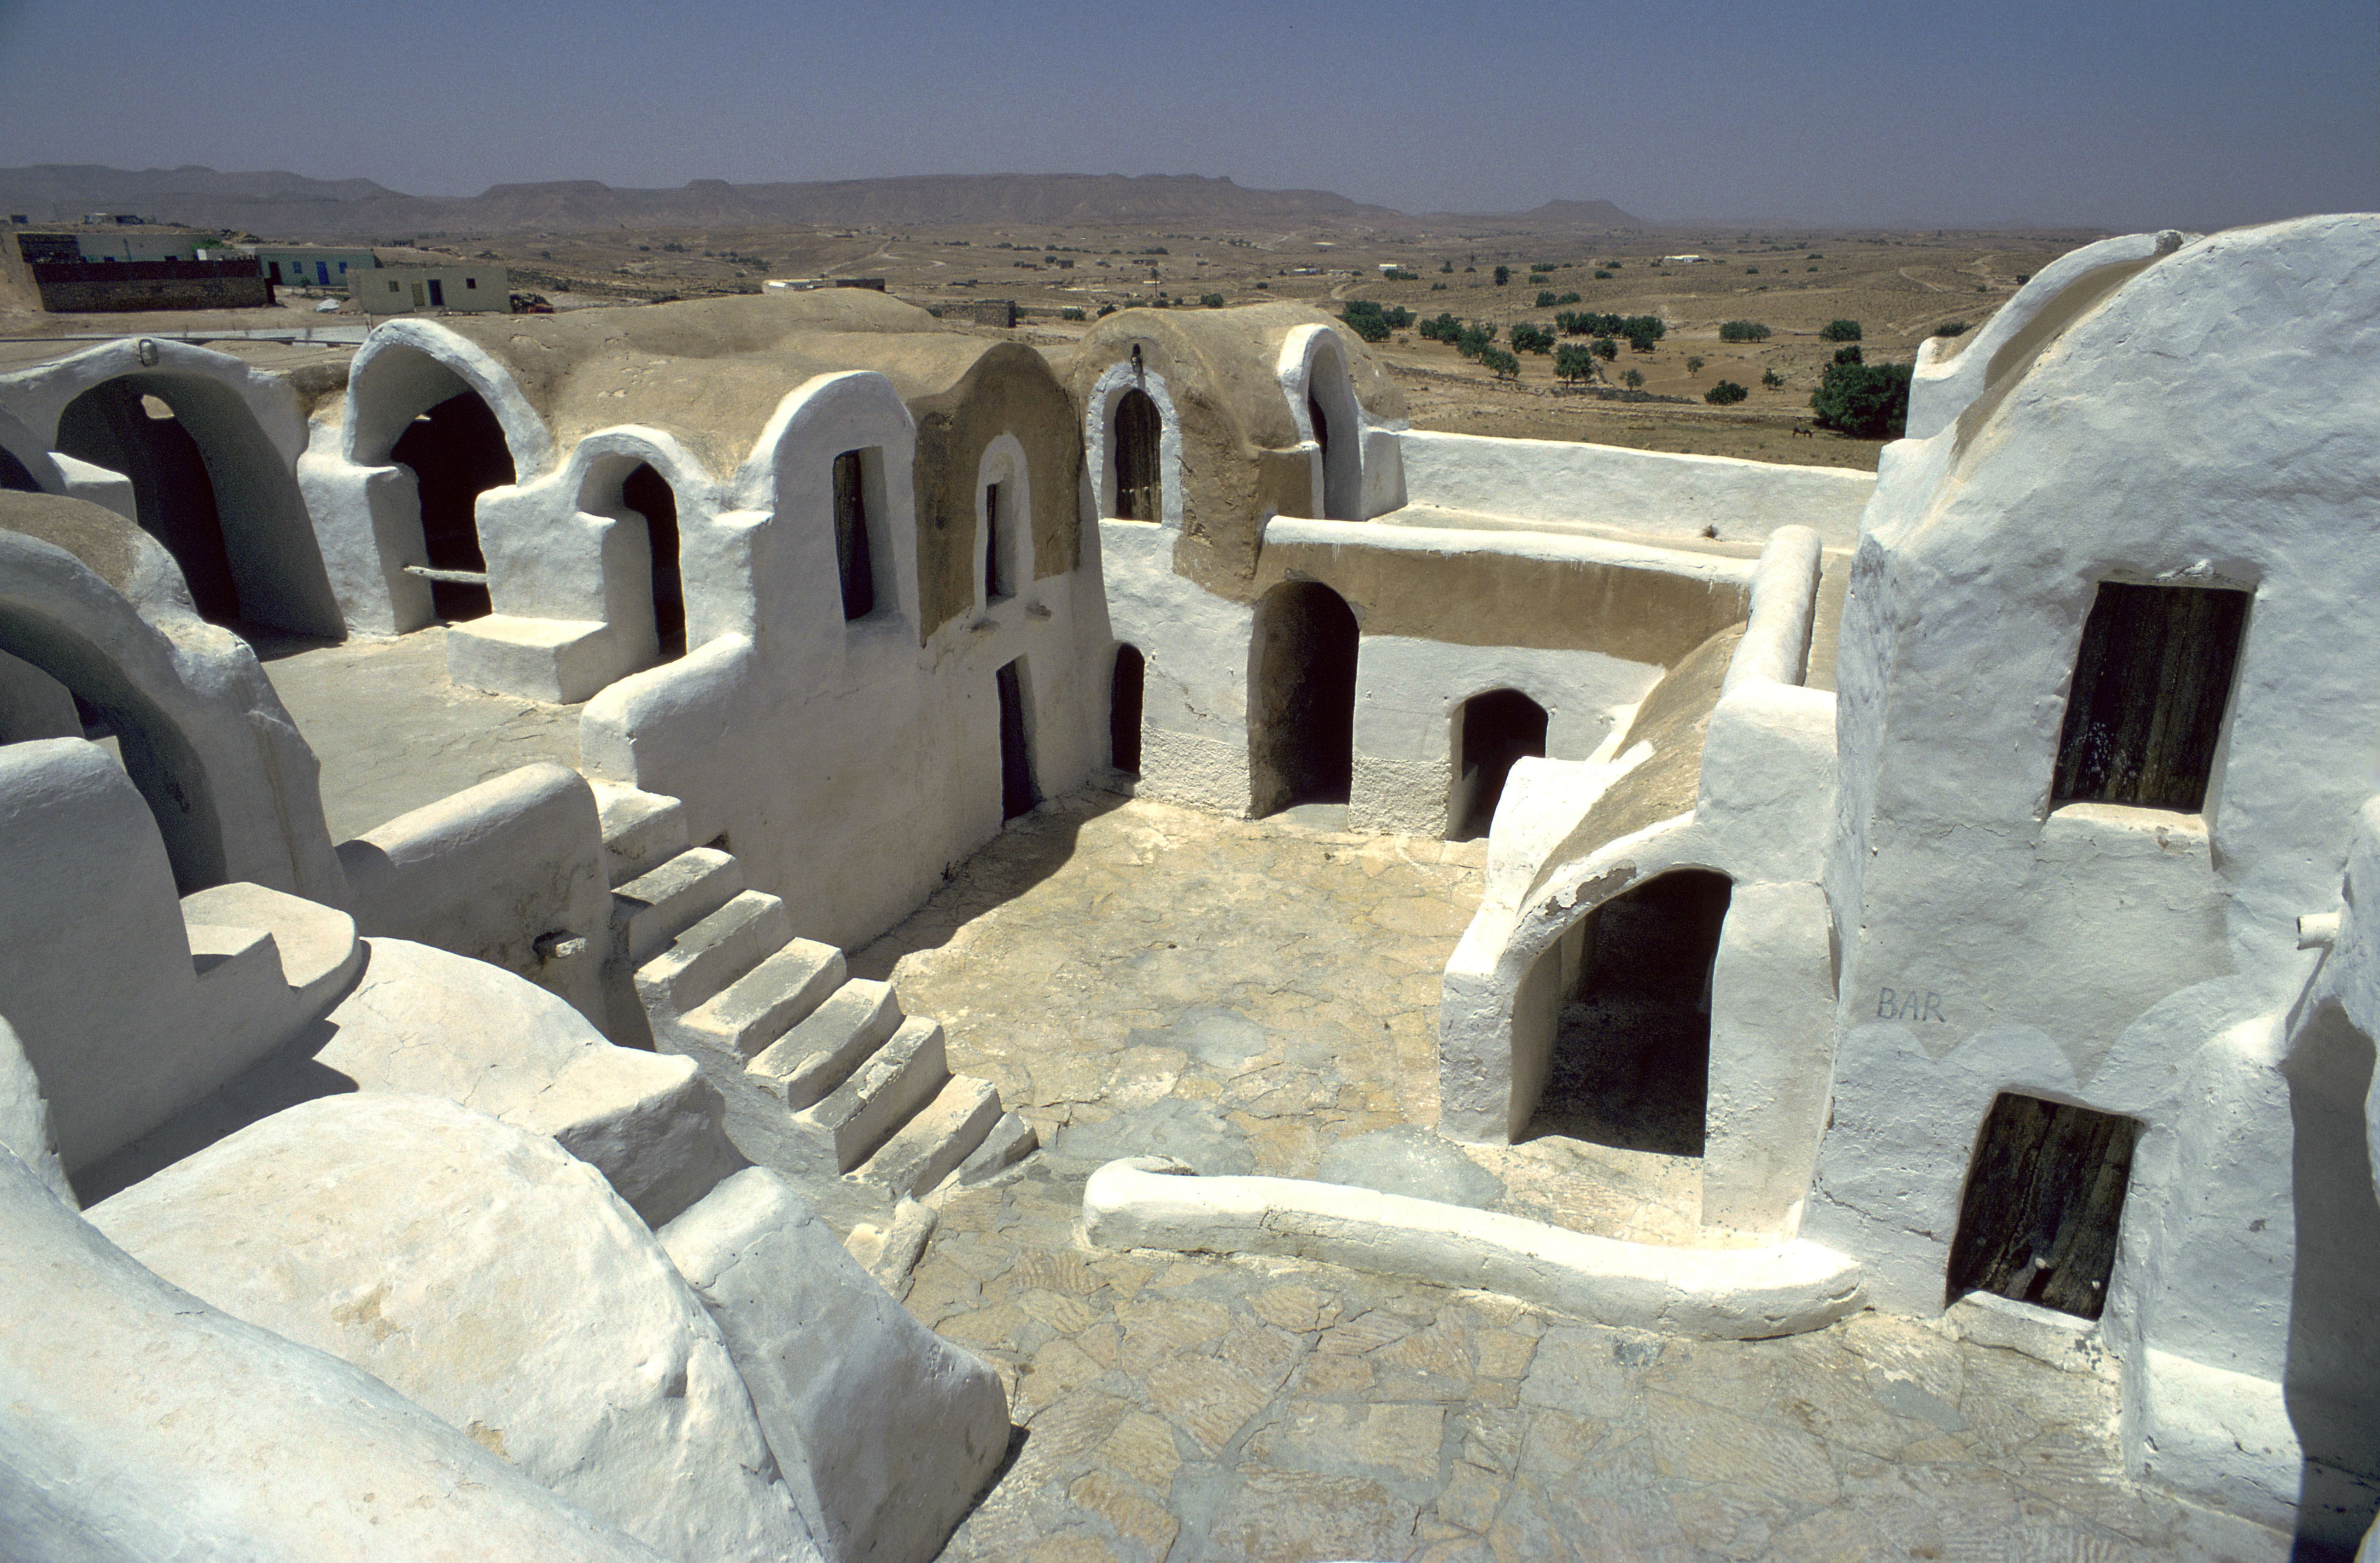 white earthen structures built beneath the earth's surface but open to the air with multiple windows, doors, and stairways